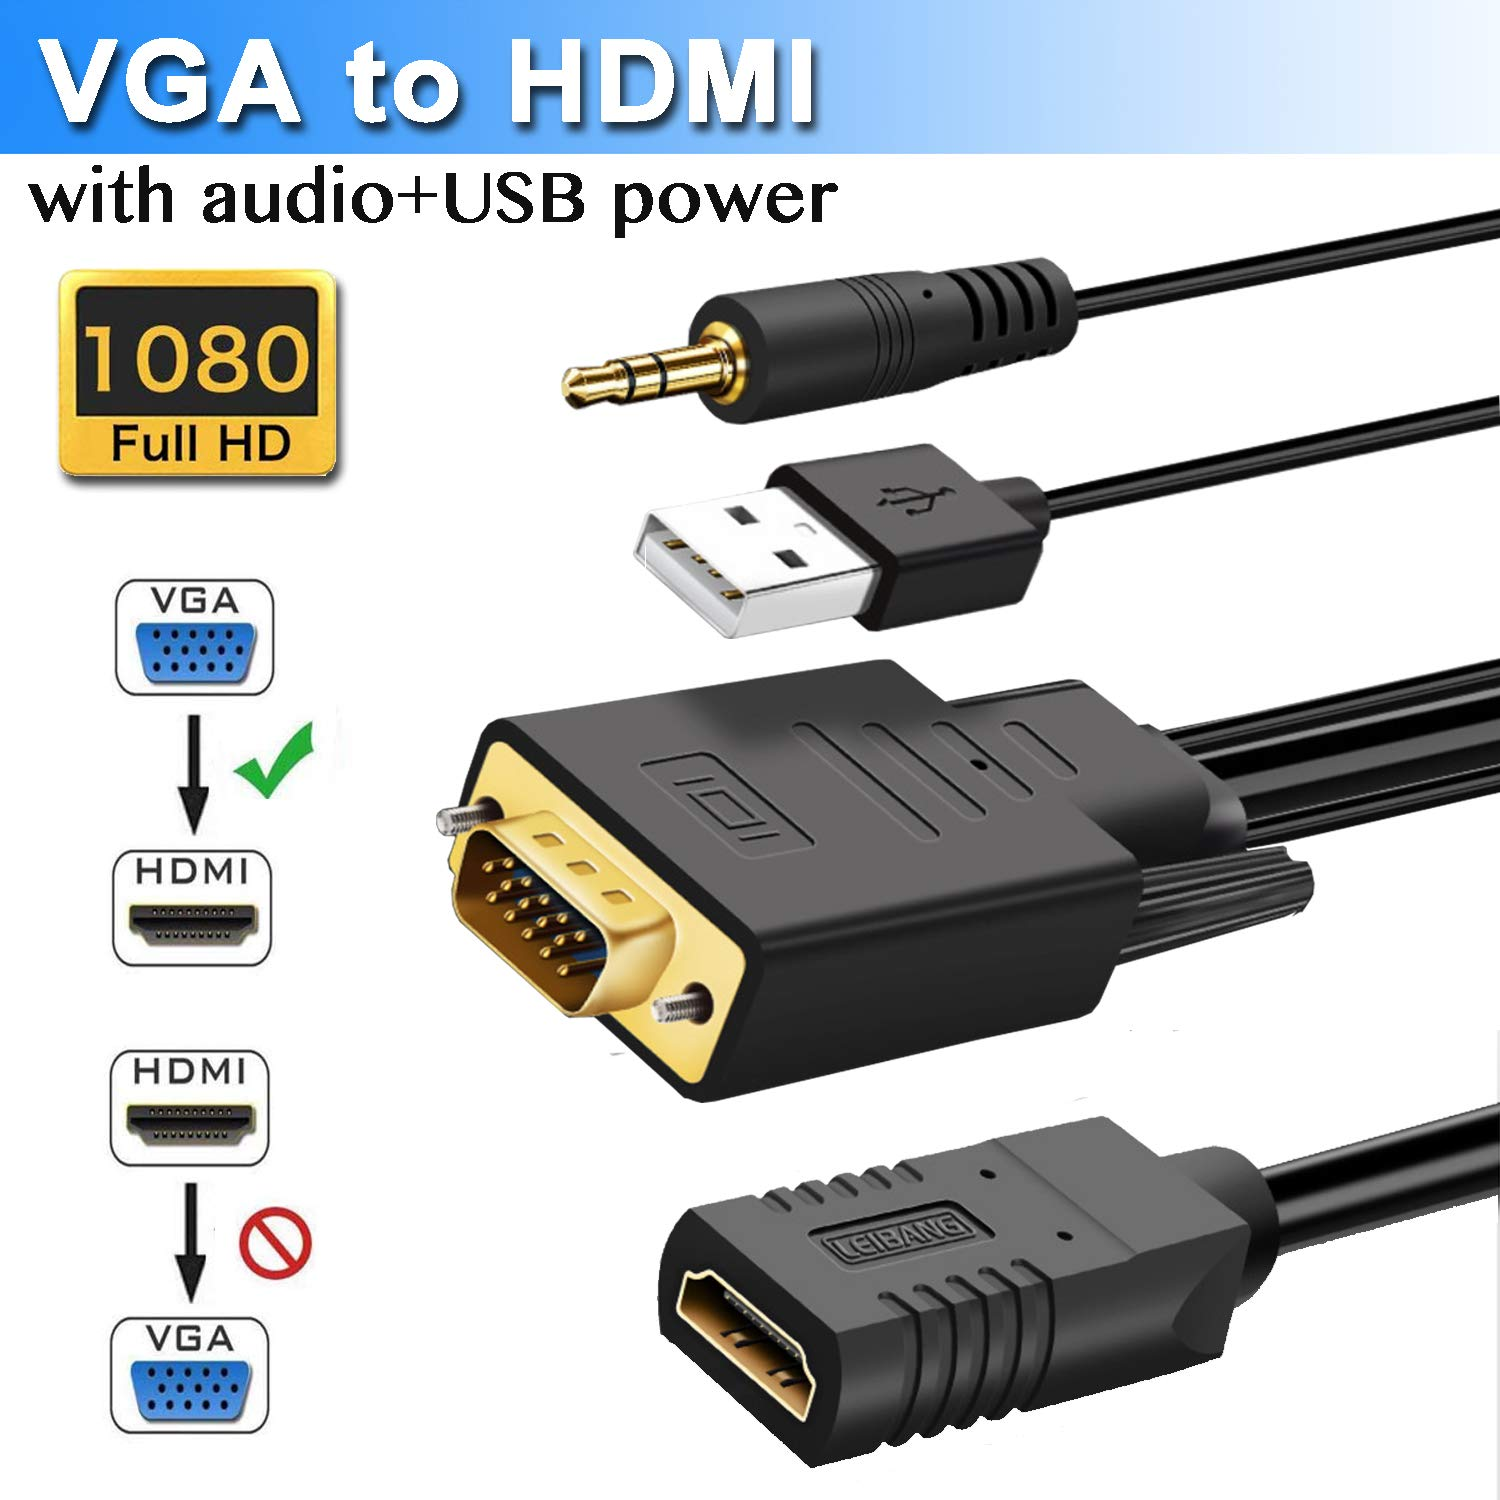 VGA to HDMI Adapter, VGA Male to HDMI Female Converter with 1080P HD Video and Audio Support for Connecting Laptop, desktop with VGA(D-Sub,HD 15-pin) to Monitor, HDTV with HDMI.(HDMI Female 12 inches)